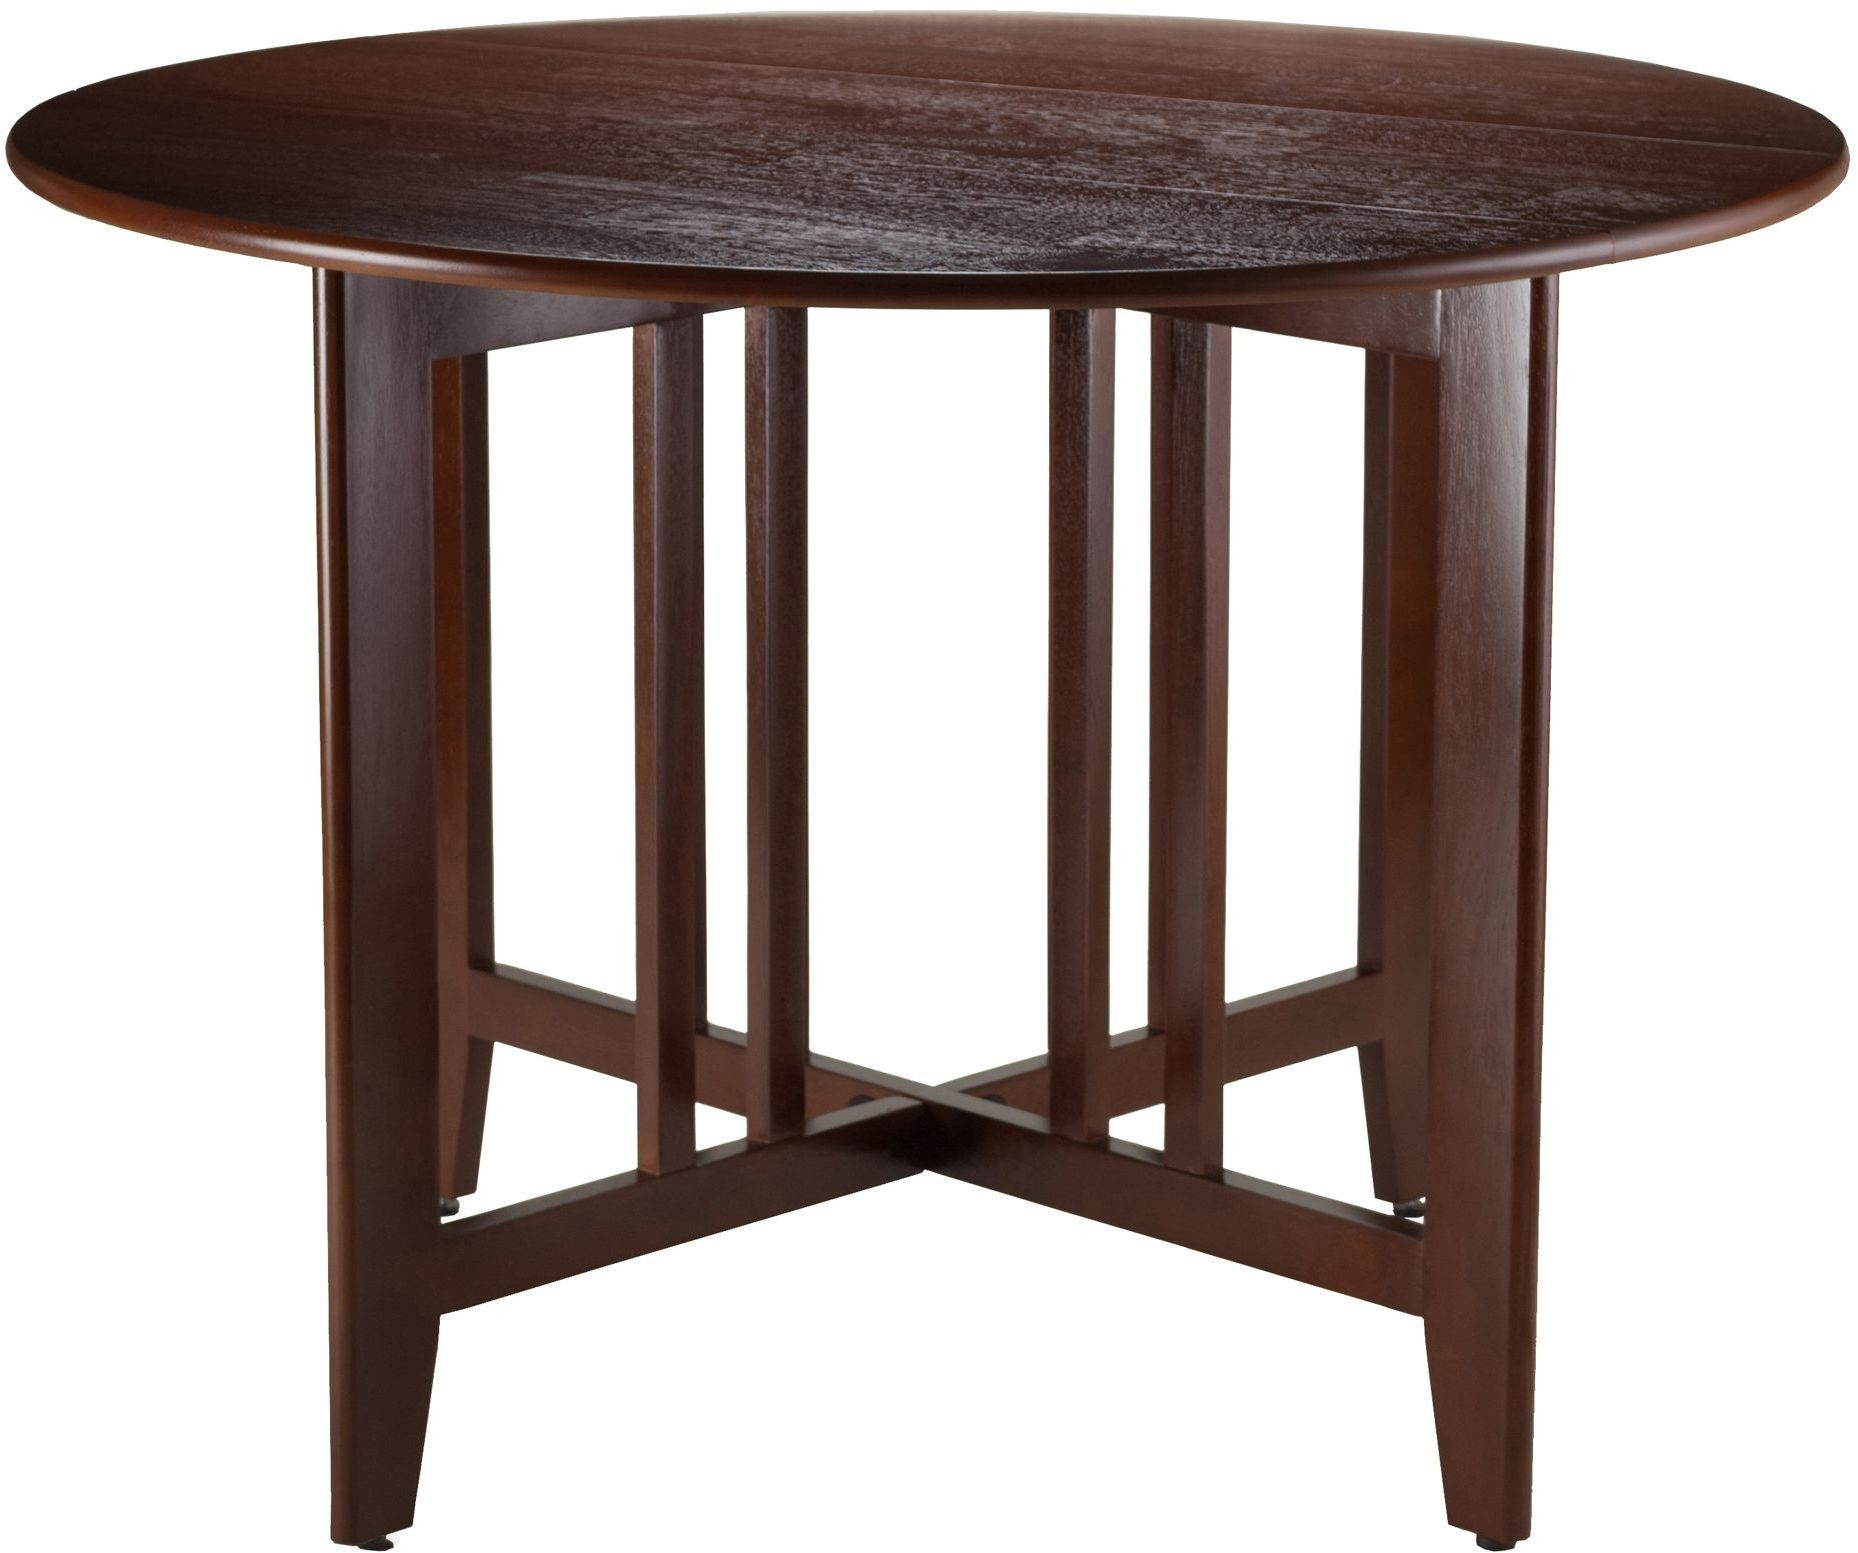 Alamo 42 double drop leaf round dining table 94142 winsome for Round drop leaf dining table